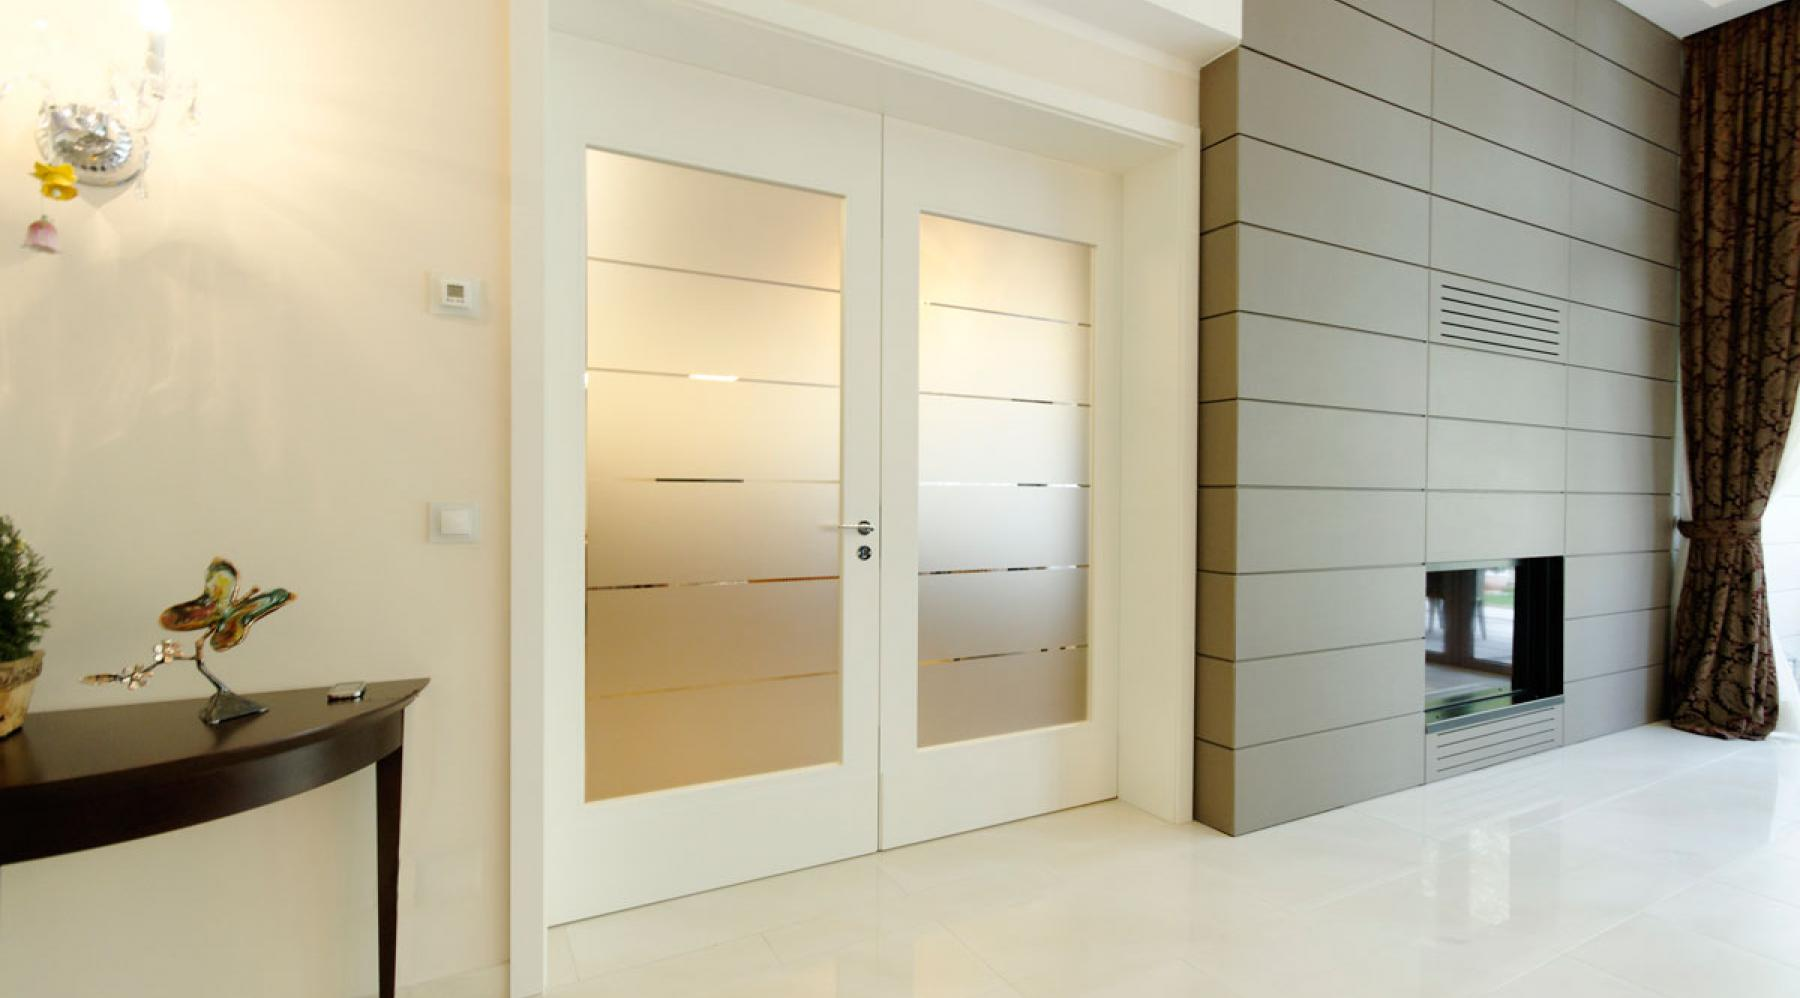 Galerie portes d 39 int rieur weigerding for Porte interieur